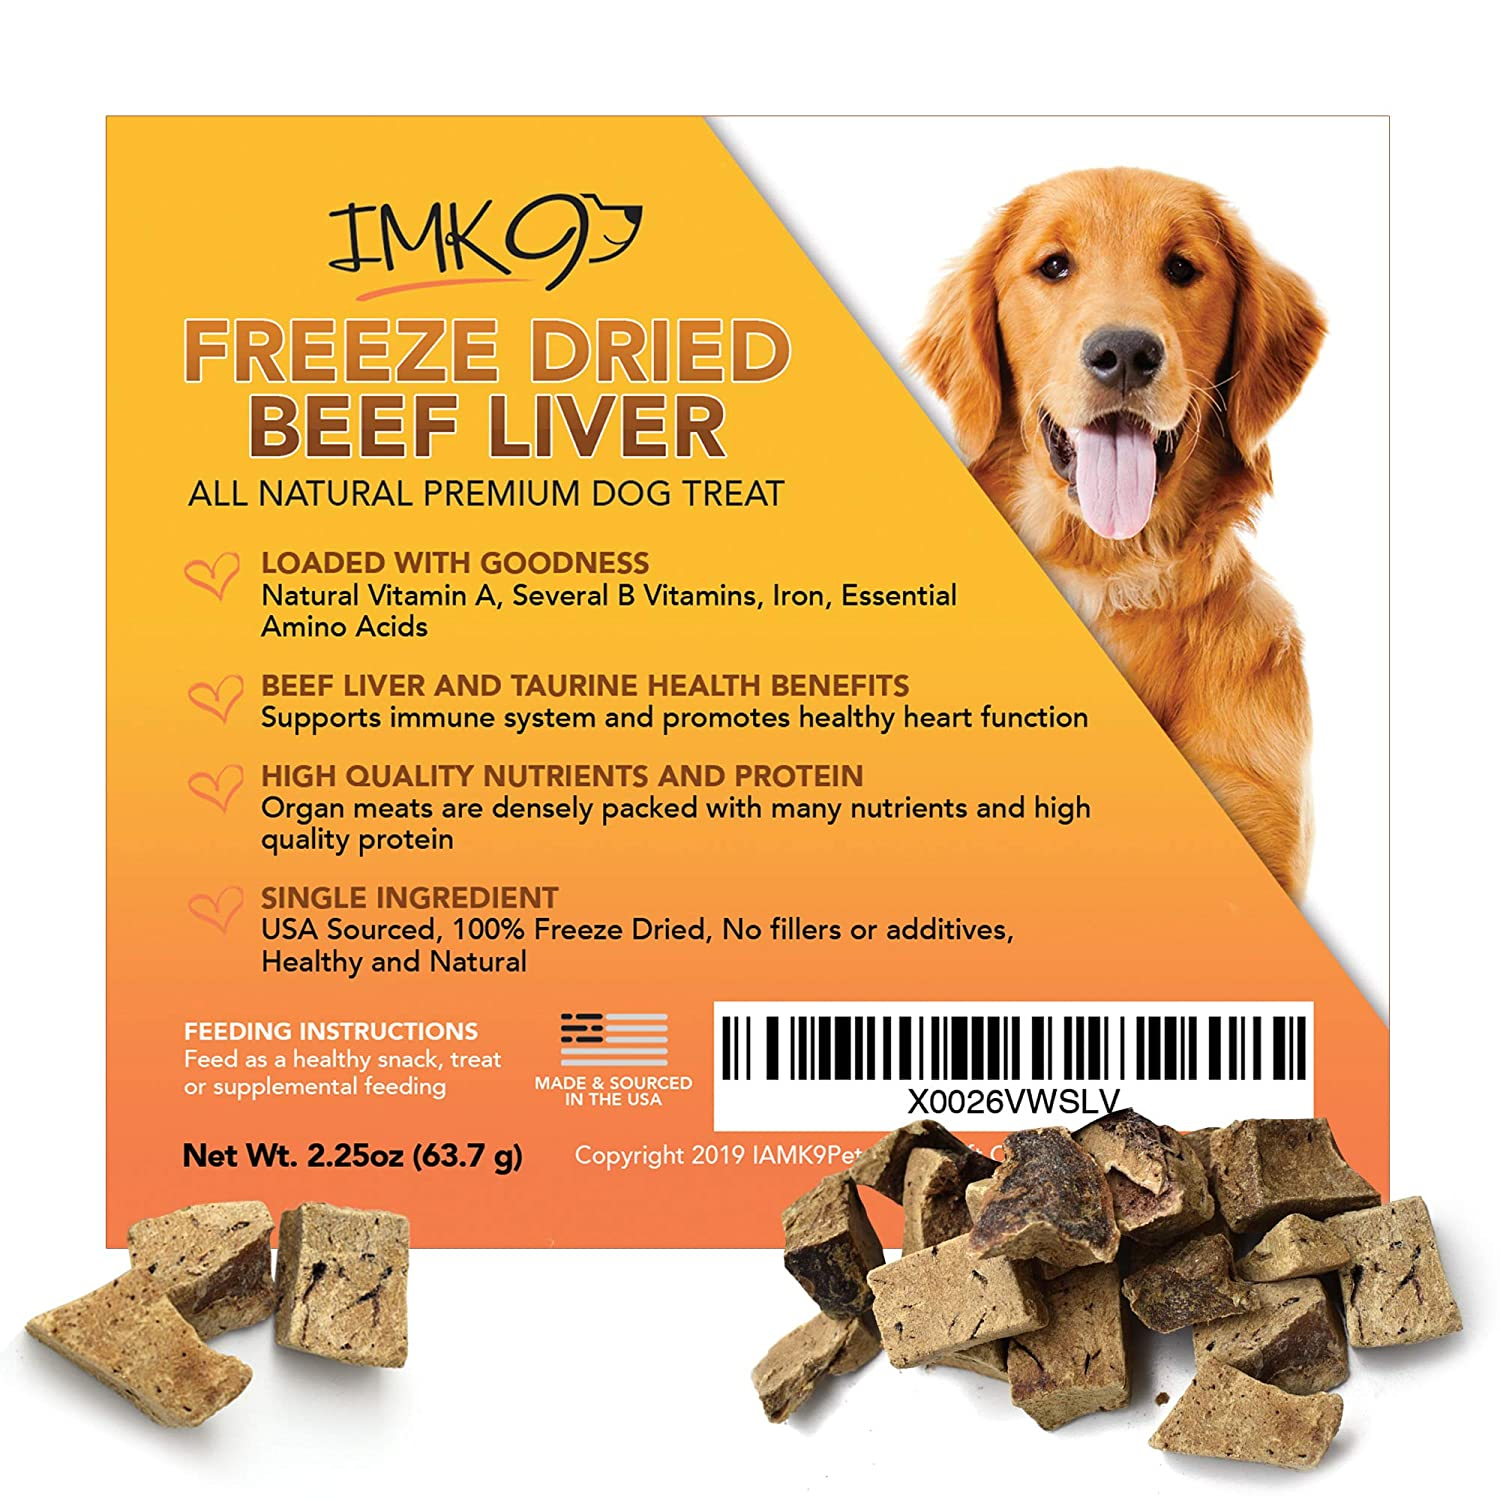 Beef Liver Treats Freeze Dried – All Natural High in Protein & Vitamins - 100% Pure Premium Beef, Grain Free – No Additives, Preservatives, Gluten, or Soy – For Dogs and Puppies – Made in the USA